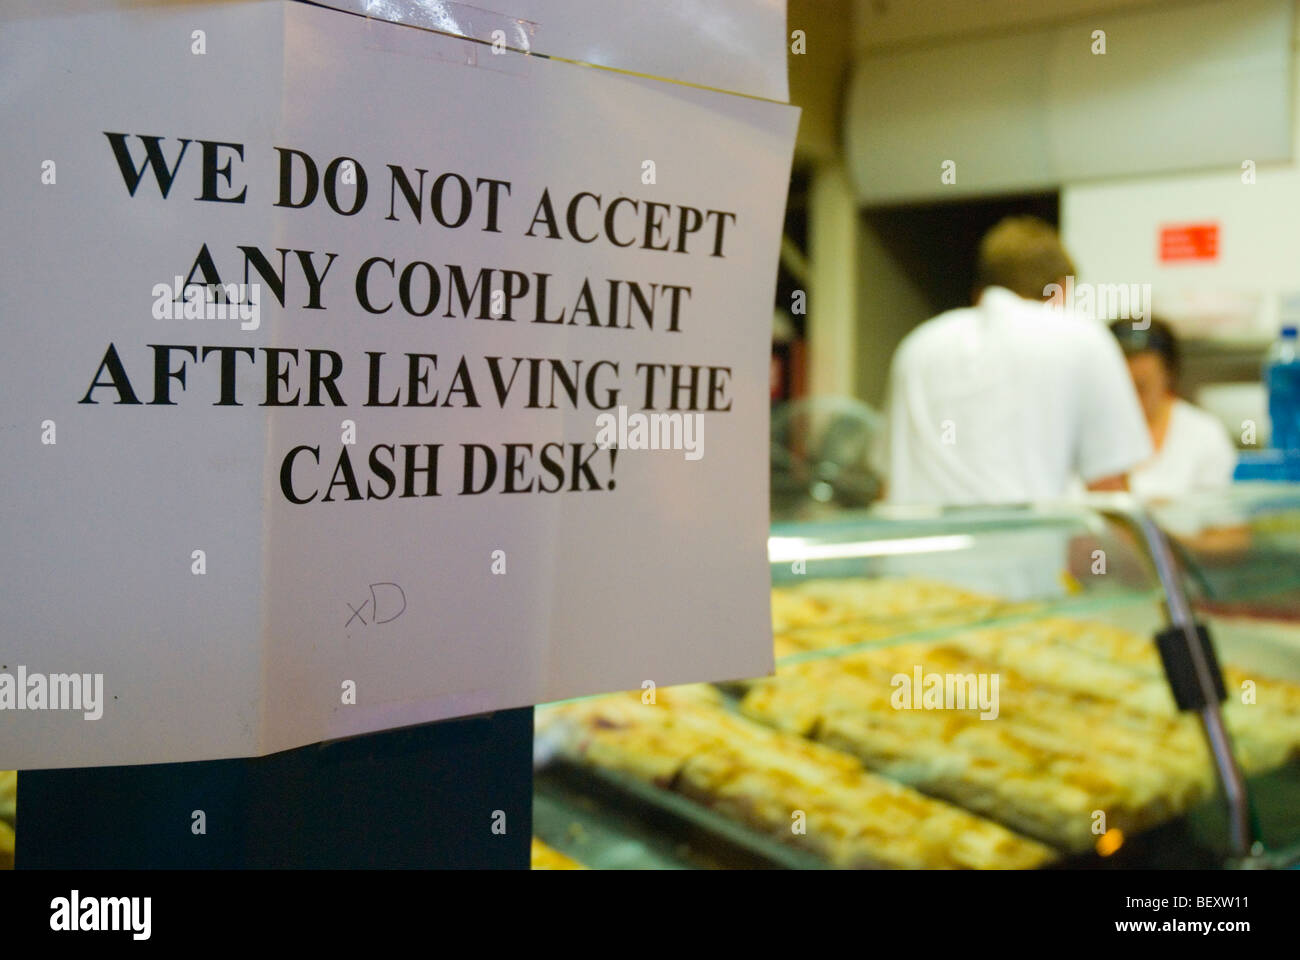 No complaints accepted after leaving the counter sign at a bakery - Stock Image